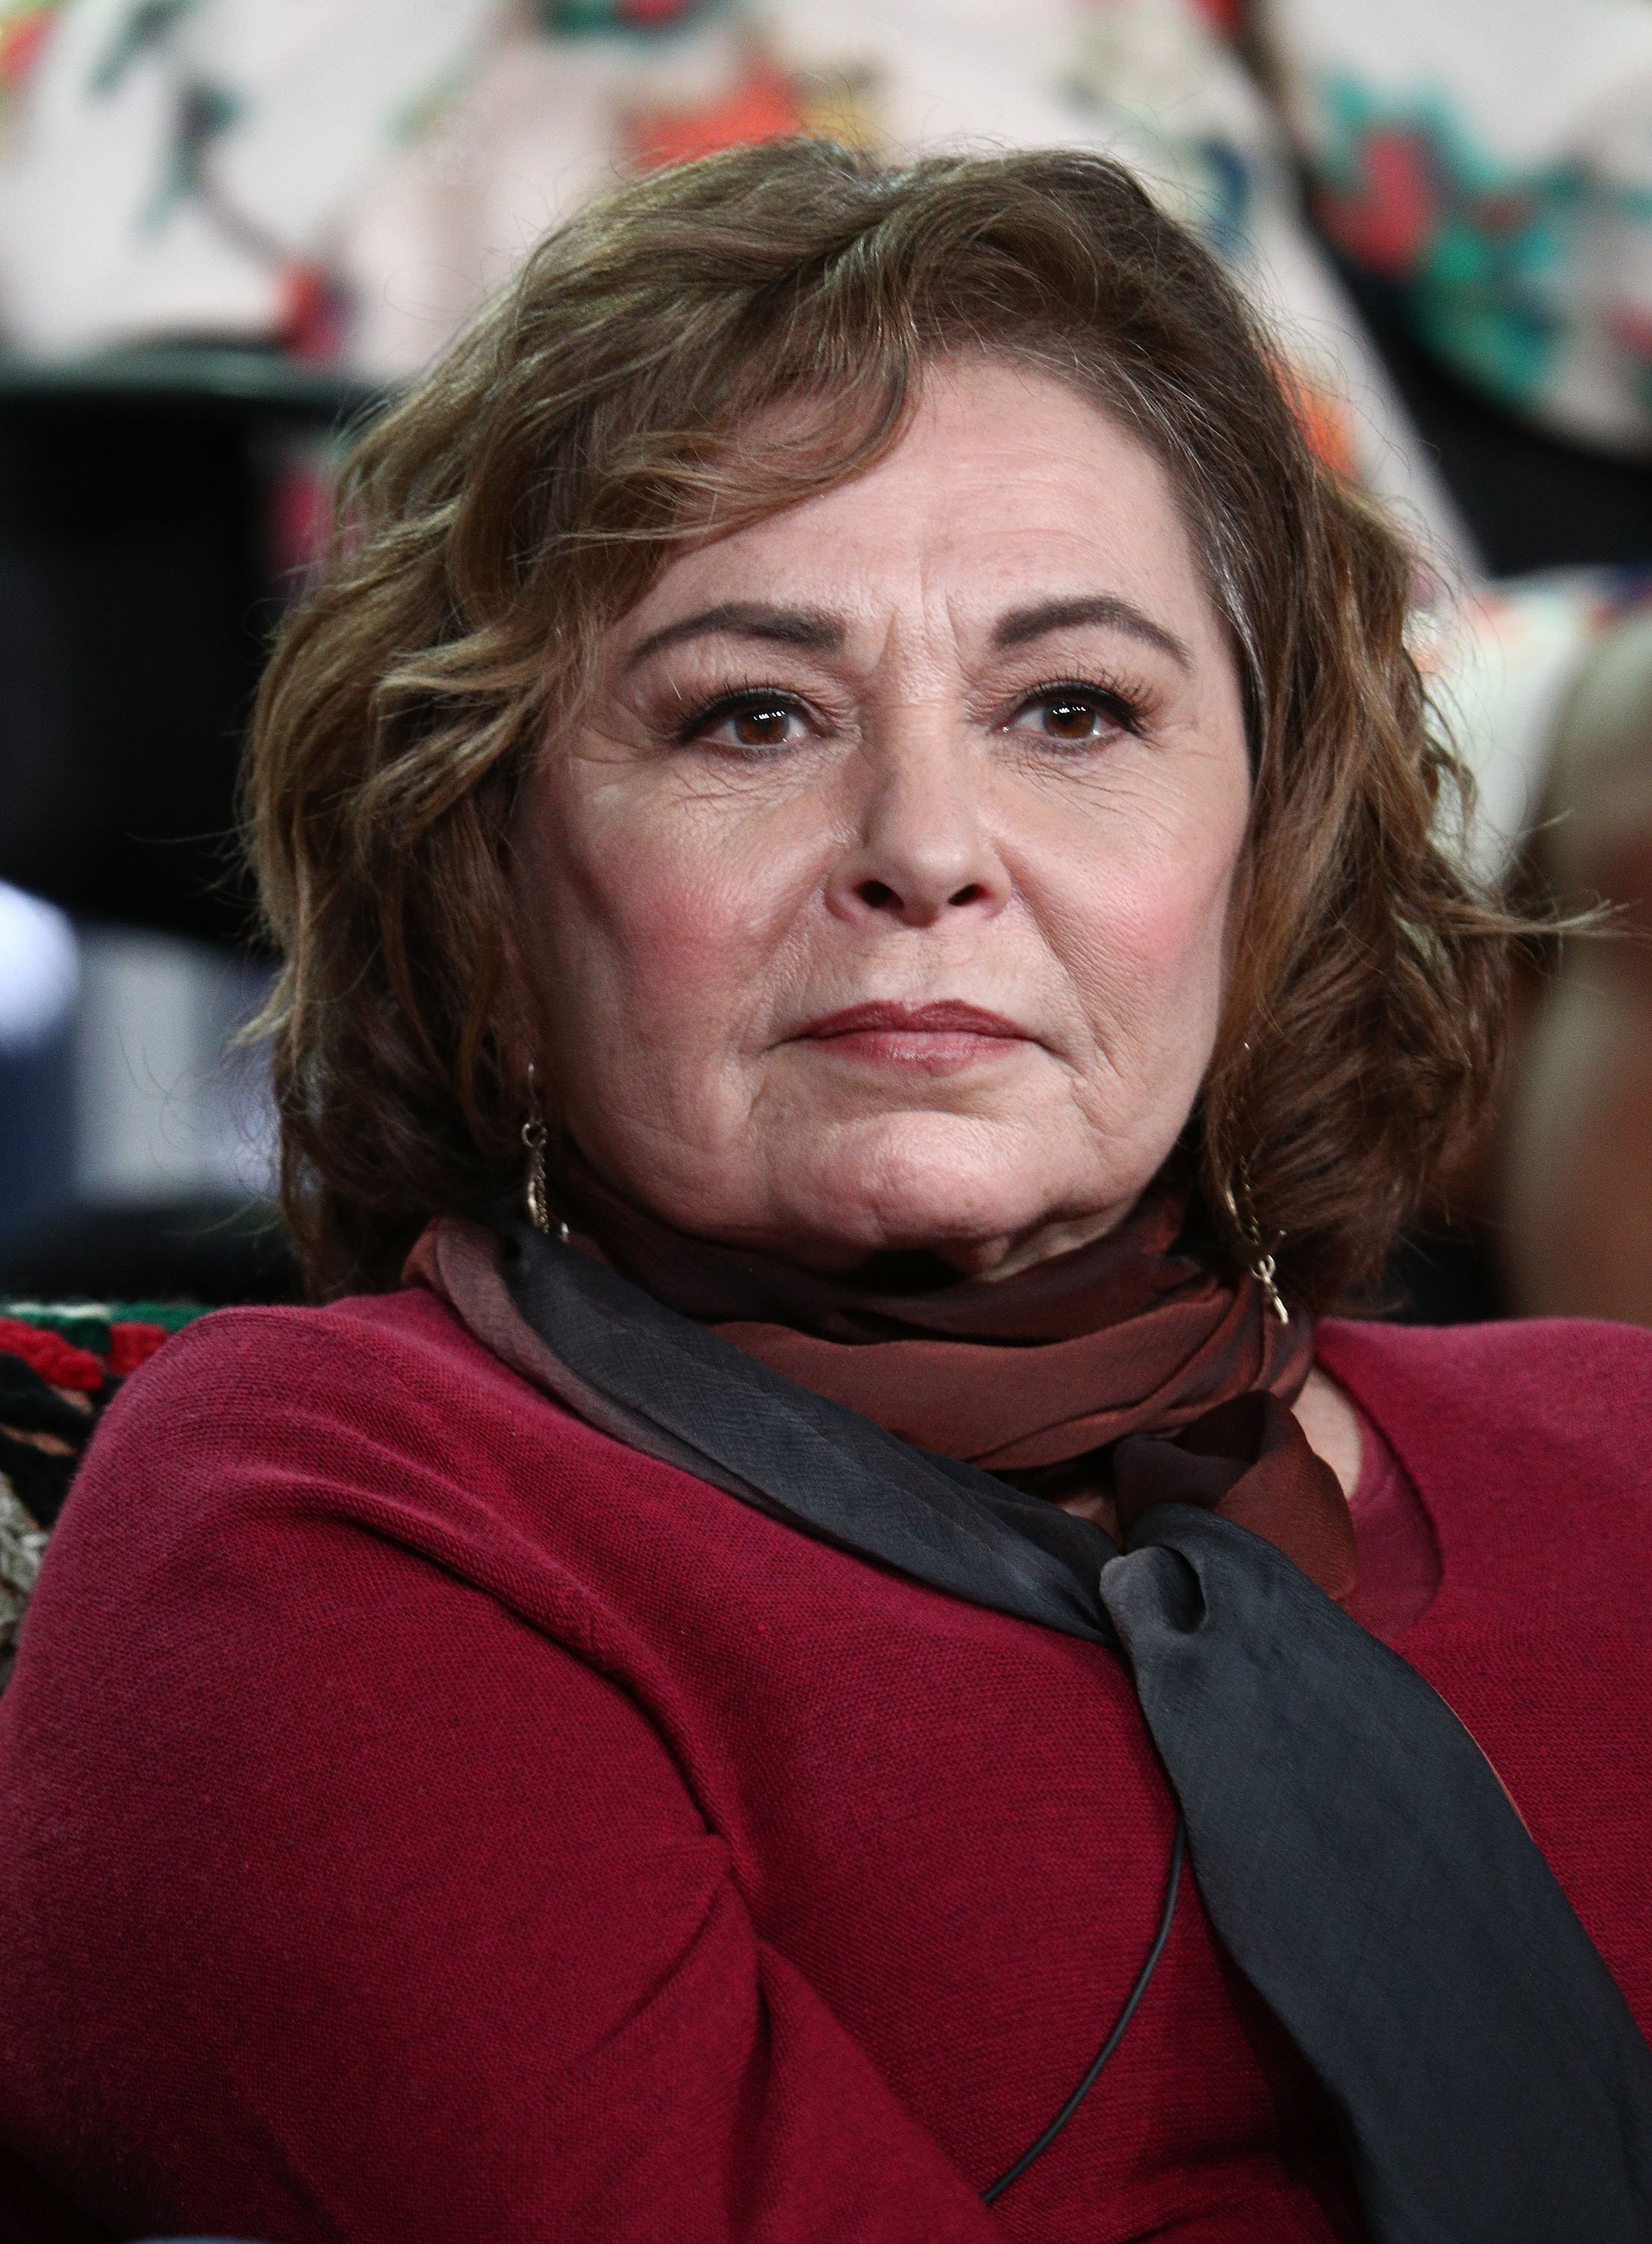 Roseanne Barr at the 2018 Winter Television Critics Association Press Tour in Pasadena, California | Photo: Getty Images